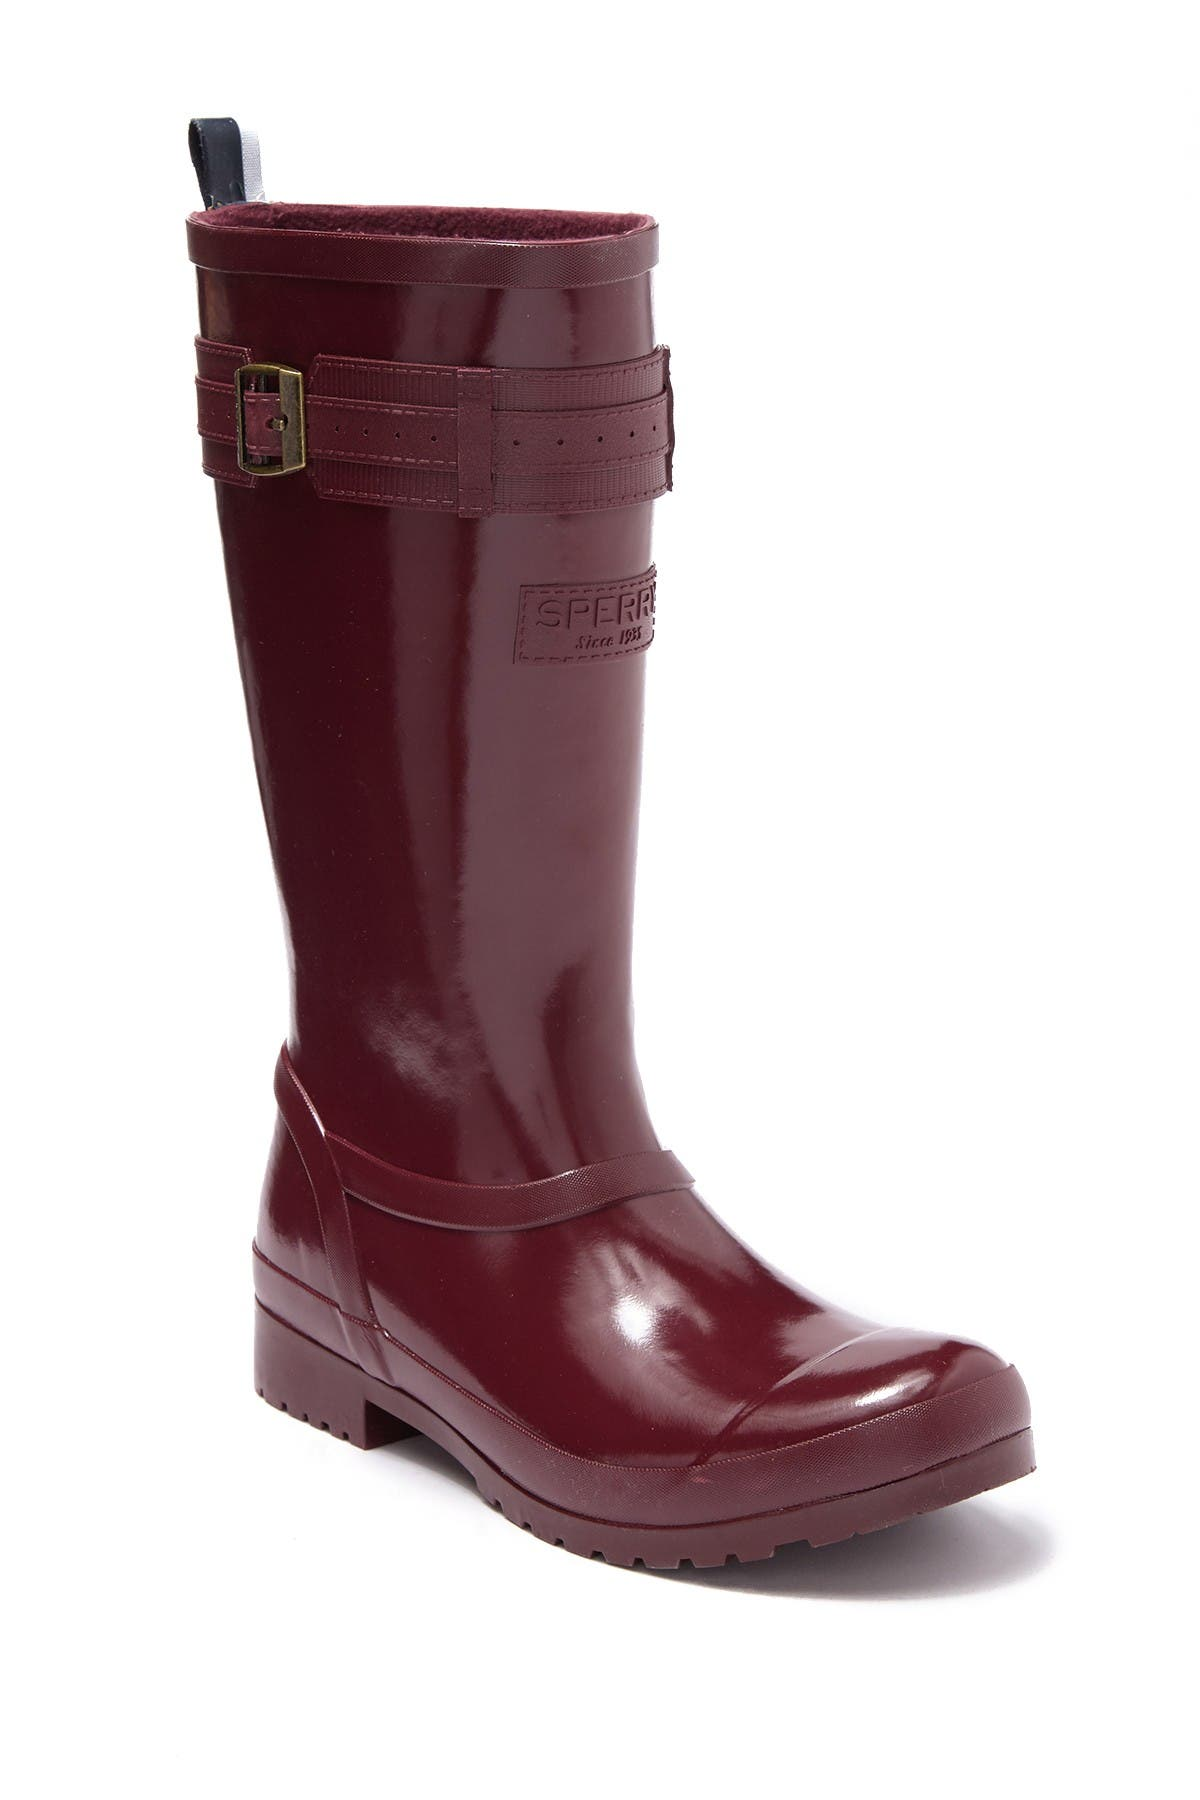 Image of Sperry Walker Atlantic Waterproof Rain Boot